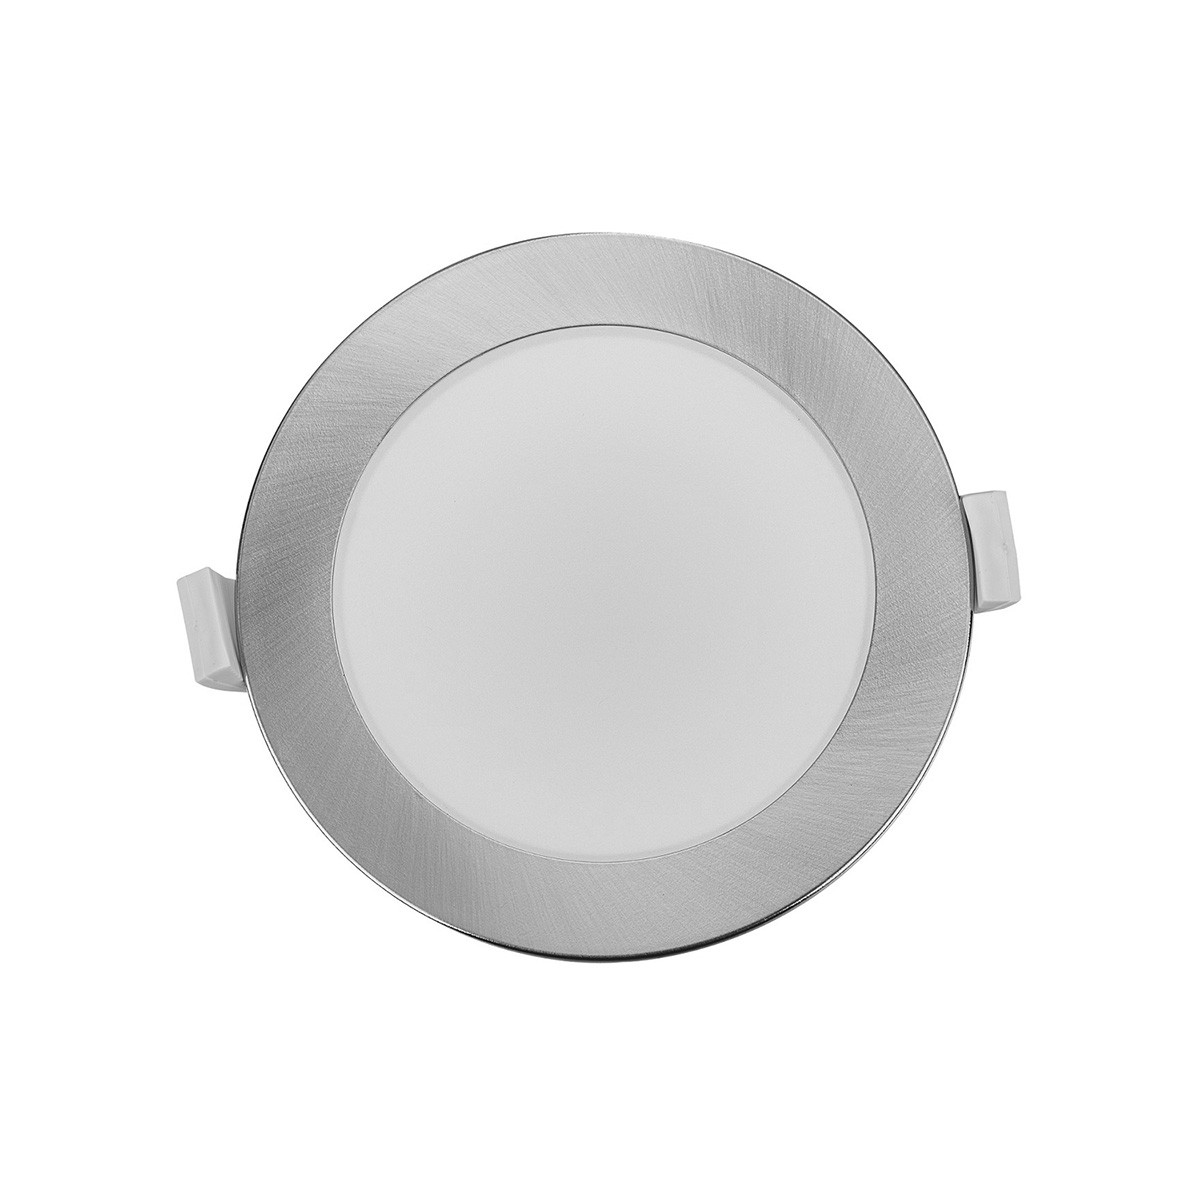 Kato LED Downlight, Nickel